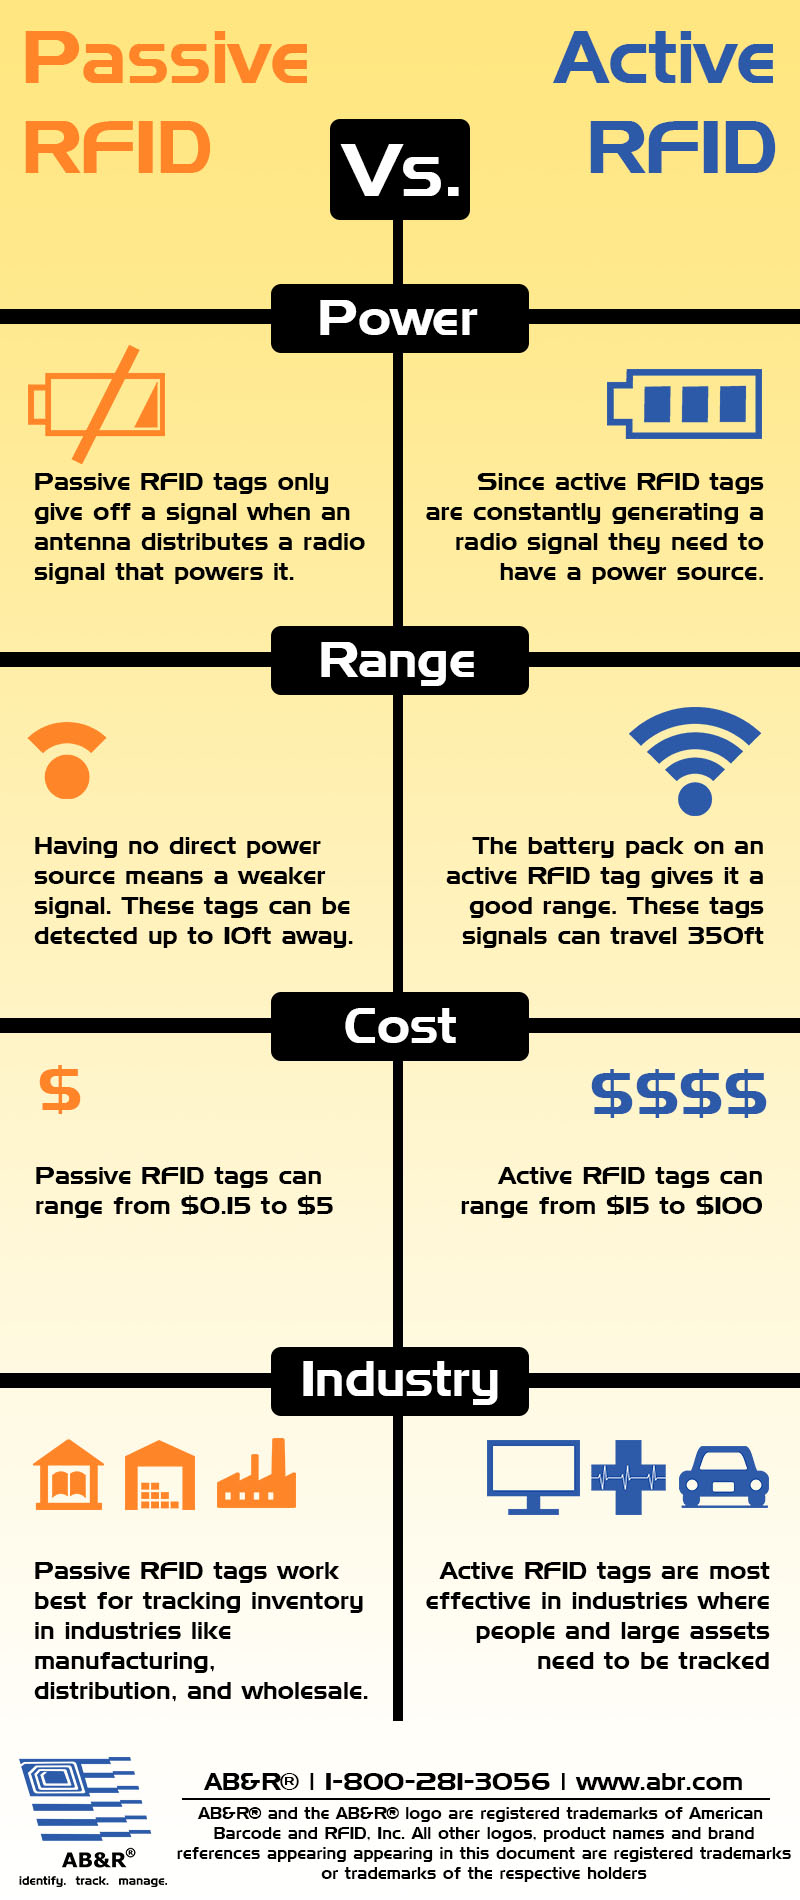 RFID Asset Tracking in Manufacturing - Active VS Passive